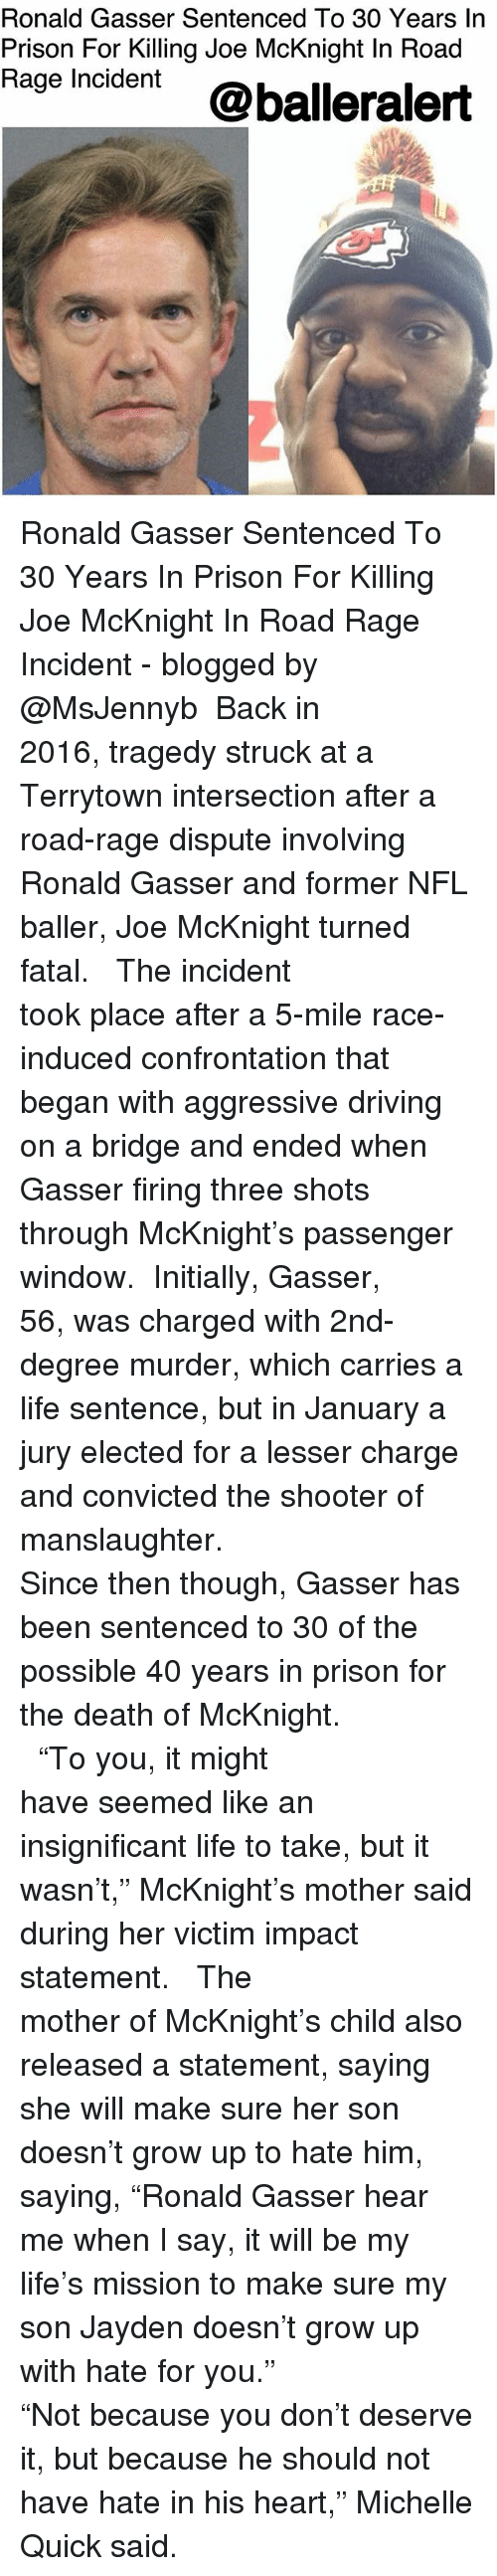 "Driving, Life, and Memes: Ronald Gasser Sentenced To 30 Years In  Prison For Killing Joe McKnight In Road  Rage Incdent @balleralert Ronald Gasser Sentenced To 30 Years In Prison For Killing Joe McKnight In Road Rage Incident - blogged by @MsJennyb ⠀⠀⠀⠀⠀⠀⠀⠀⠀ Back in 2016, tragedy struck at a Terrytown intersection after a road-rage dispute involving Ronald Gasser and former NFL baller, Joe McKnight turned fatal. ⠀⠀⠀⠀⠀⠀⠀⠀⠀ ⠀⠀⠀⠀⠀⠀⠀⠀⠀ The incident took place after a 5-mile race-induced confrontation that began with aggressive driving on a bridge and ended when Gasser firing three shots through McKnight's passenger window. ⠀⠀⠀⠀⠀⠀⠀⠀⠀ Initially, Gasser, 56, was charged with 2nd-degree murder, which carries a life sentence, but in January a jury elected for a lesser charge and convicted the shooter of manslaughter. ⠀⠀⠀⠀⠀⠀⠀⠀⠀ ⠀⠀⠀⠀⠀⠀⠀⠀⠀ Since then though, Gasser has been sentenced to 30 of the possible 40 years in prison for the death of McKnight. ⠀⠀⠀⠀⠀⠀⠀⠀⠀ ⠀⠀⠀⠀⠀⠀⠀⠀⠀ ⠀⠀⠀⠀⠀⠀⠀⠀⠀ ""To you, it might have seemed like an insignificant life to take, but it wasn't,"" McKnight's mother said during her victim impact statement. ⠀⠀⠀⠀⠀⠀⠀⠀⠀ ⠀⠀⠀⠀⠀⠀⠀⠀⠀ The mother of McKnight's child also released a statement, saying she will make sure her son doesn't grow up to hate him, saying, ""Ronald Gasser hear me when I say, it will be my life's mission to make sure my son Jayden doesn't grow up with hate for you."" ⠀⠀⠀⠀⠀⠀⠀⠀⠀ ⠀⠀⠀⠀⠀⠀⠀⠀⠀ ""Not because you don't deserve it, but because he should not have hate in his heart,"" Michelle Quick said."